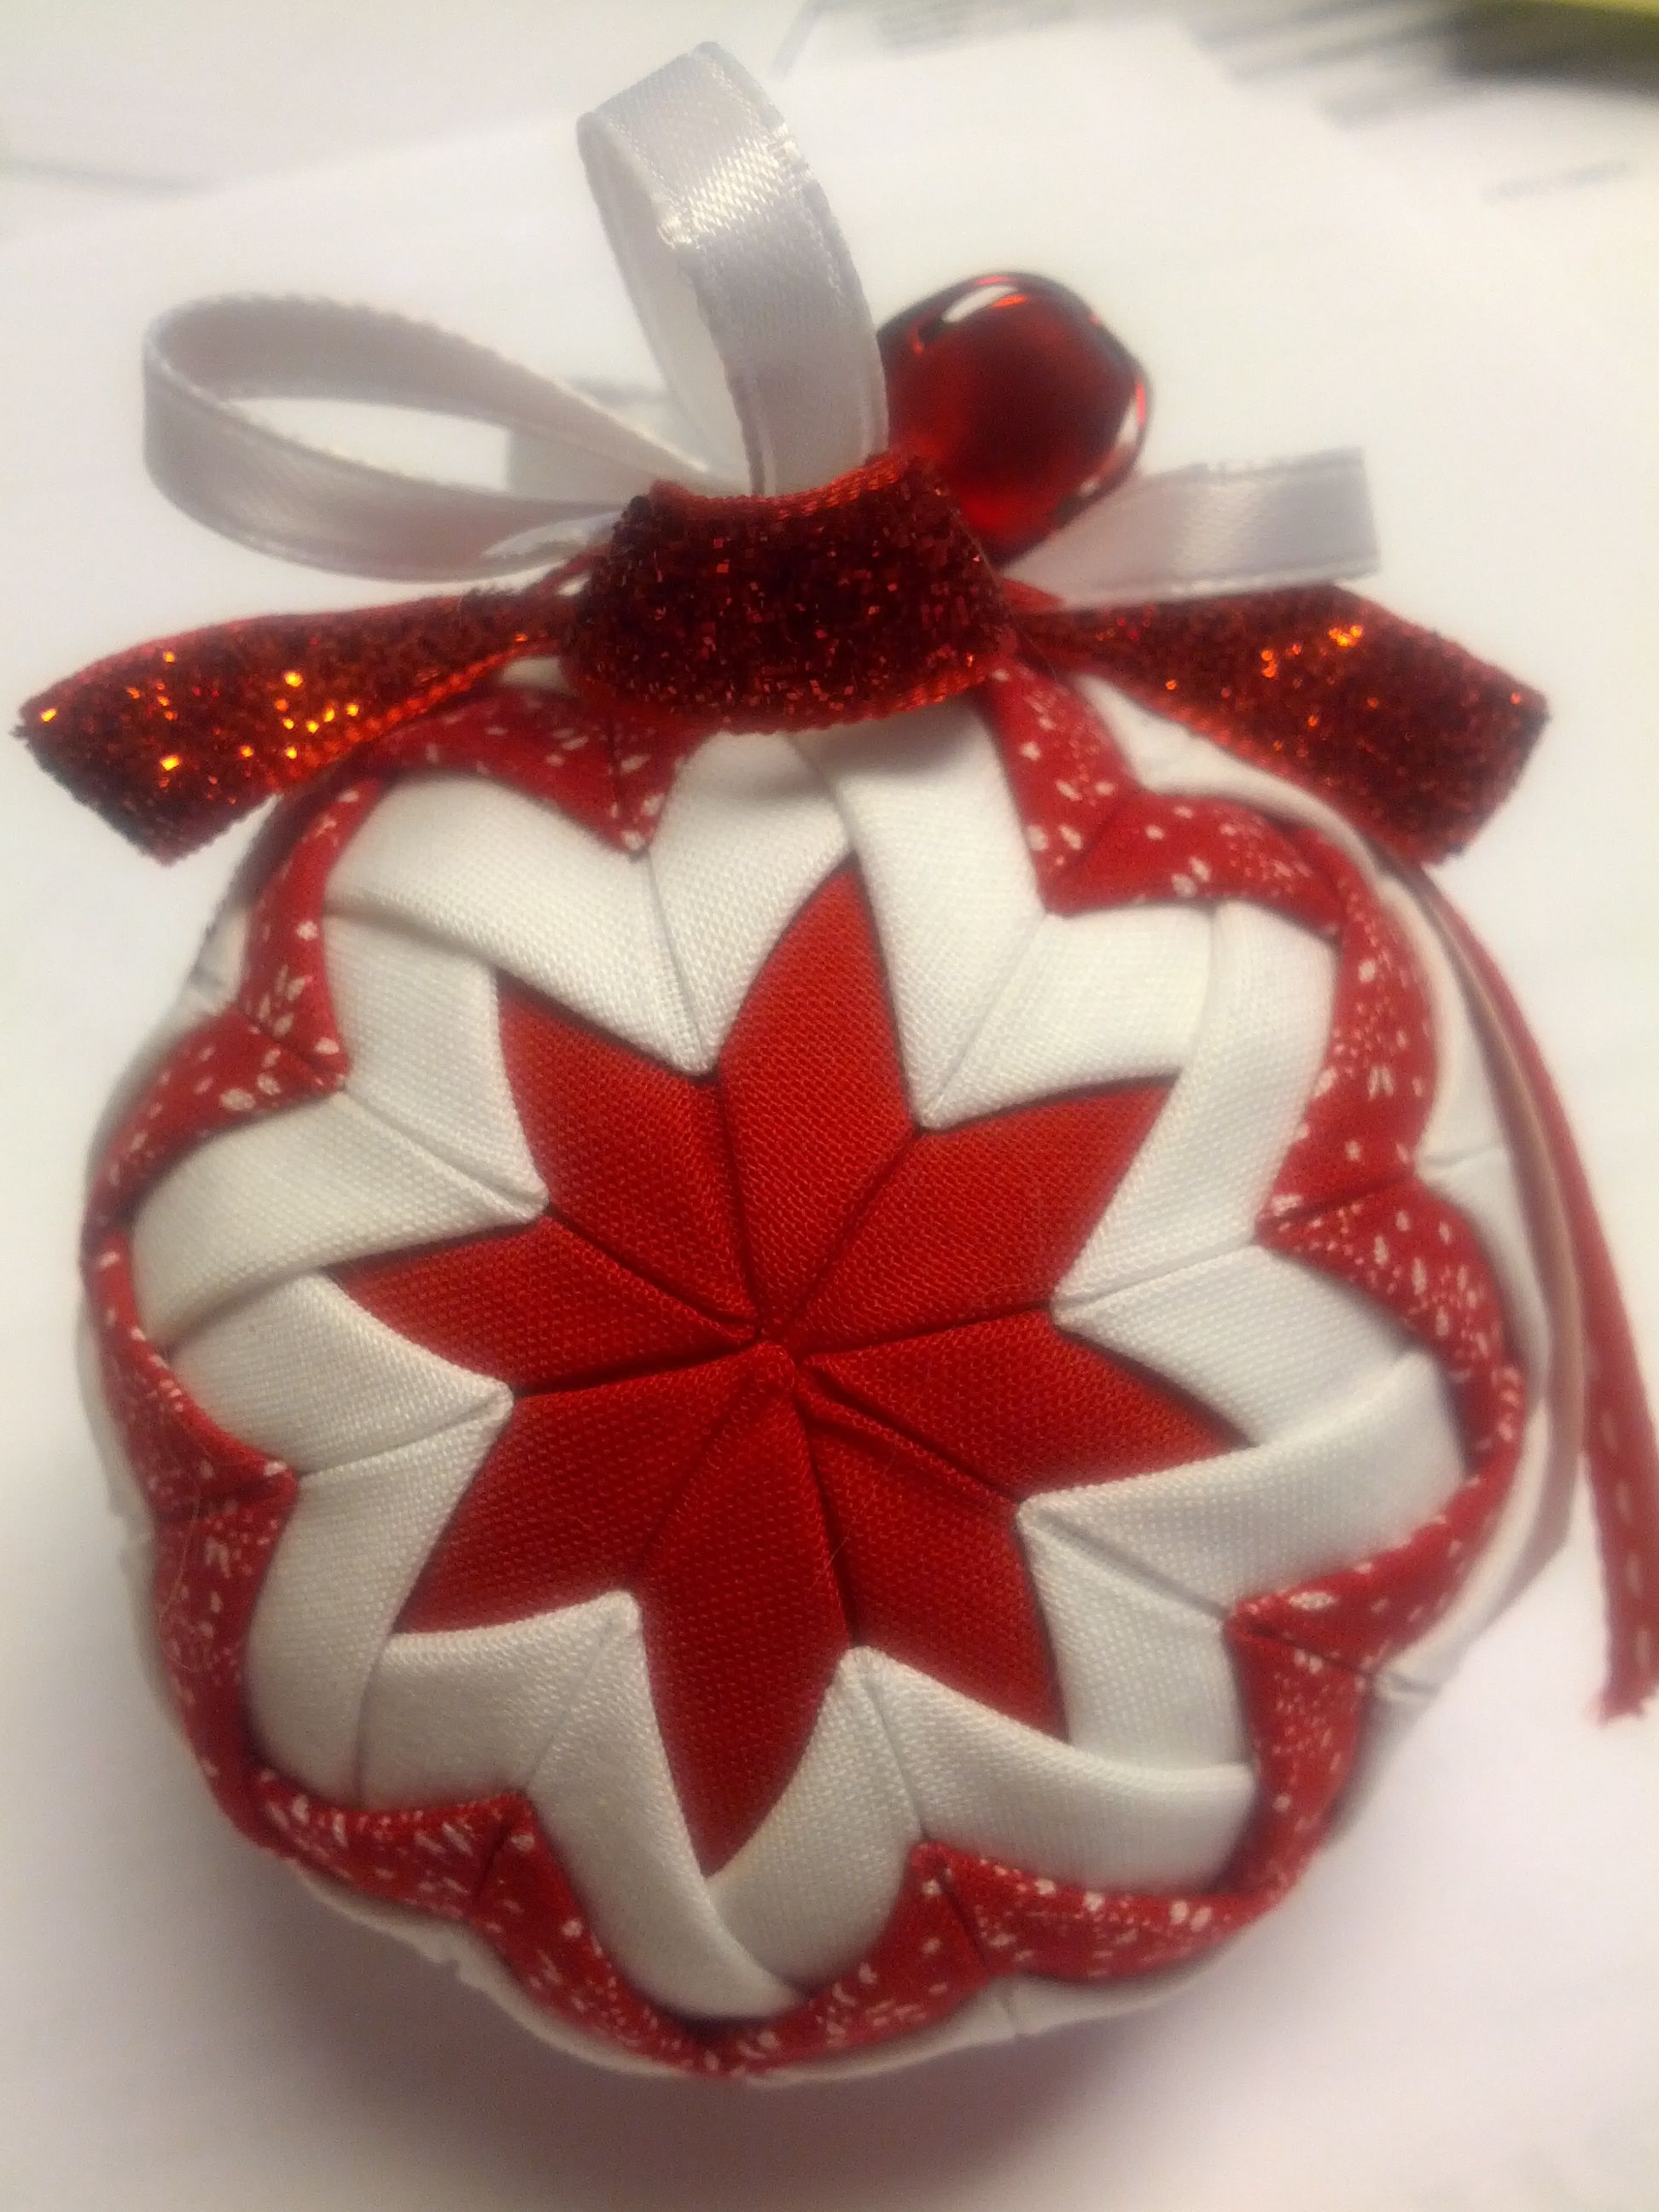 Diy Ornament Made Out Of Foam Ball Fabric Straight Pins Ribbon Fabric Ornaments Christmas Ornaments How To Make Ornaments